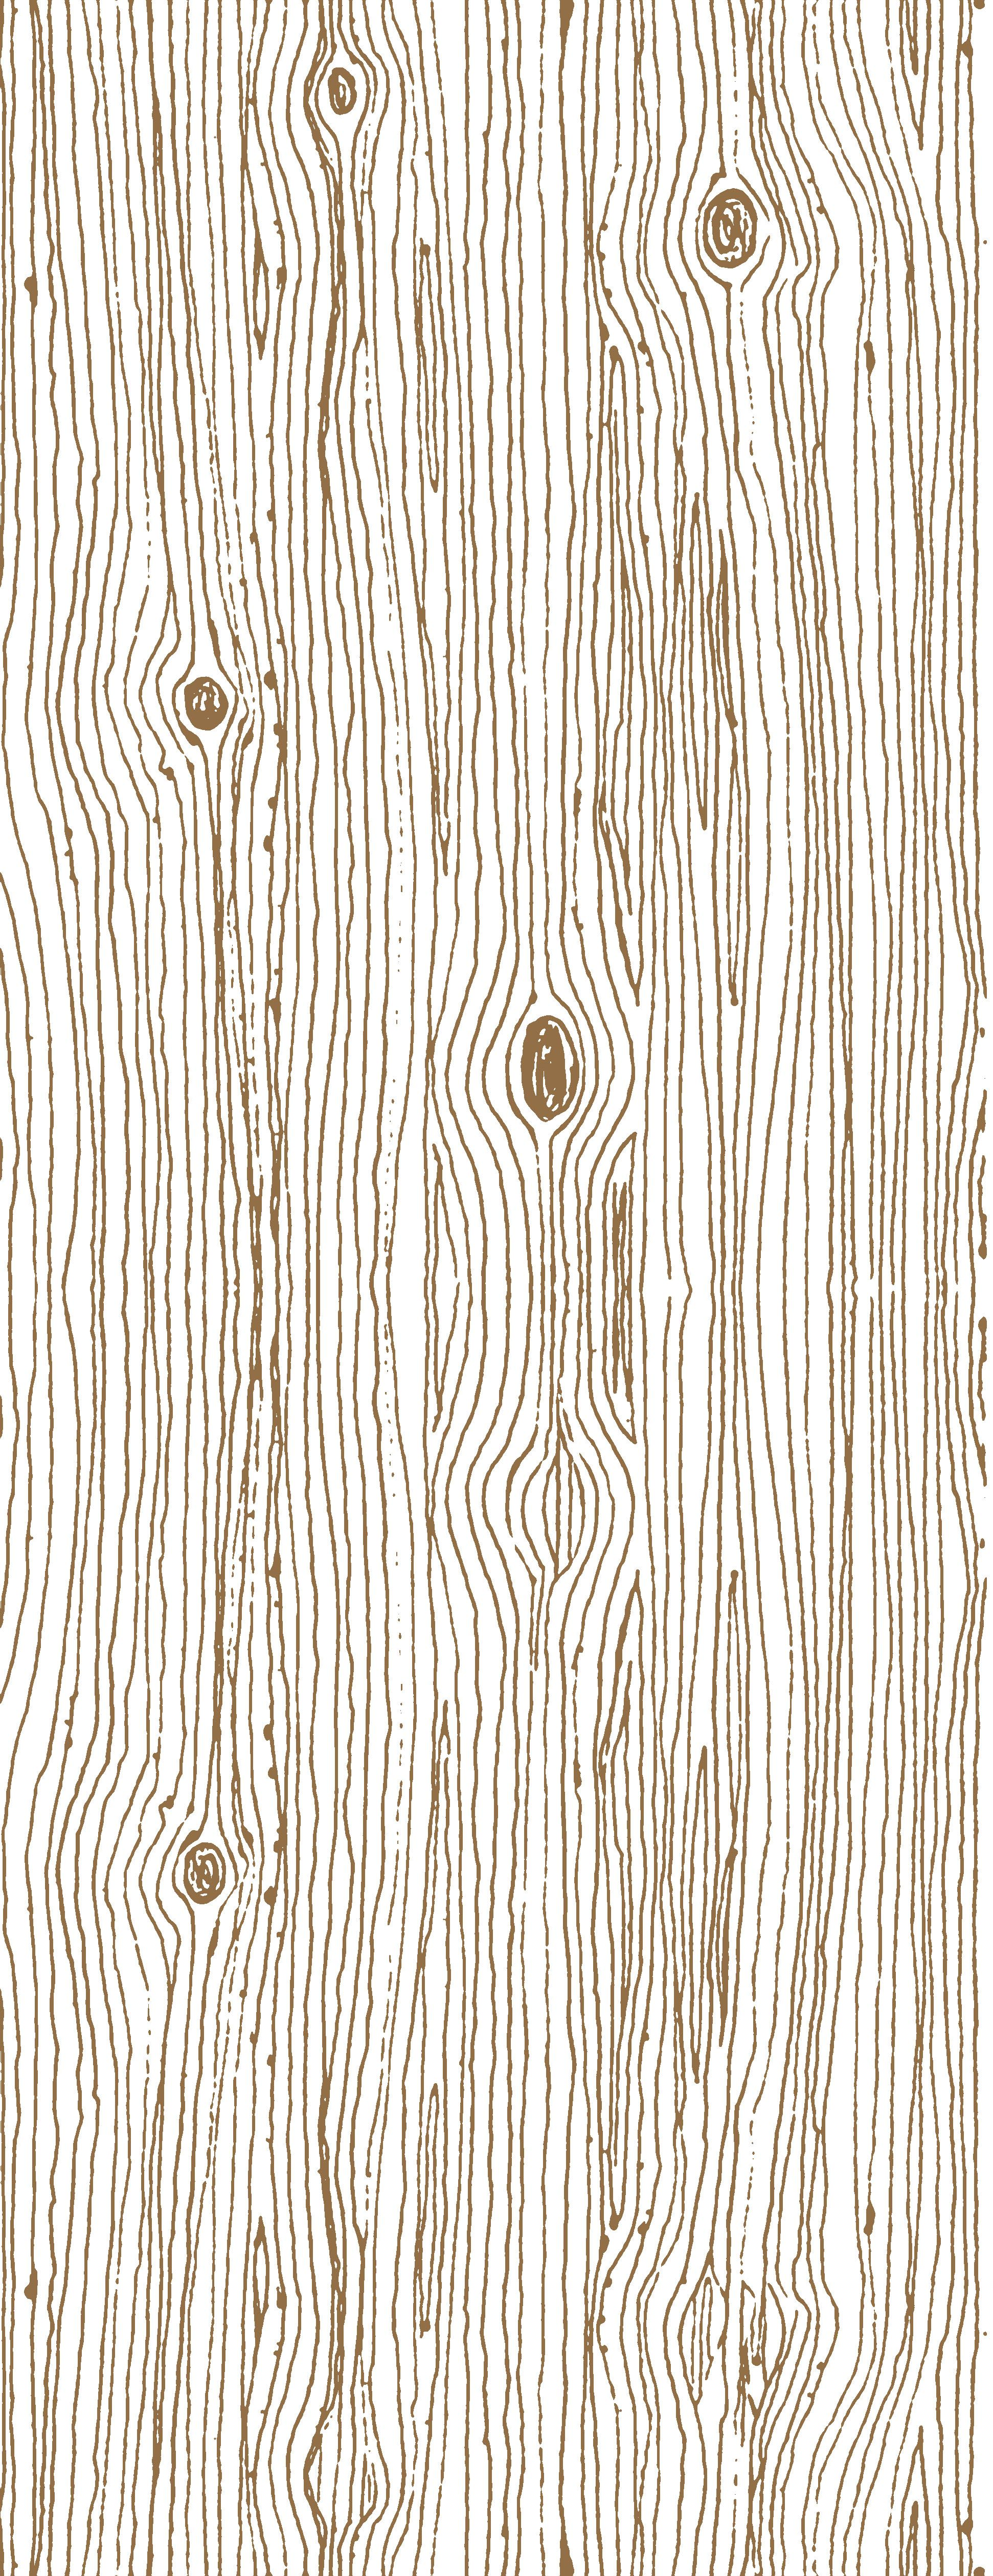 Pin By Mathan On Favourite In 2019 Scratched Wood Wood